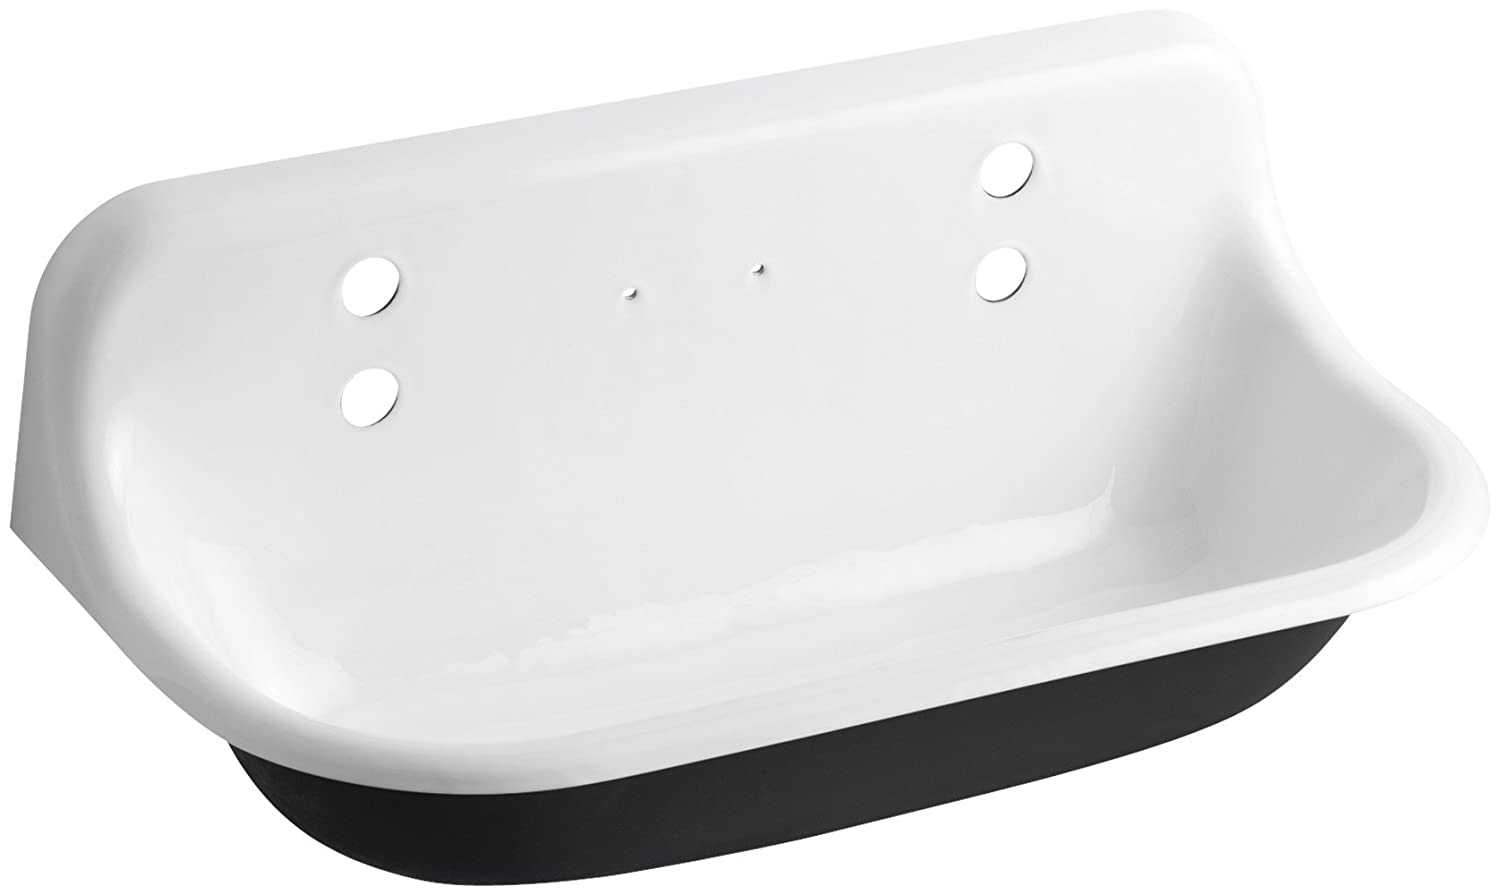 KOHLER K-3200-0 Brockway Wash Sink, White - Single Bowl Sinks ...